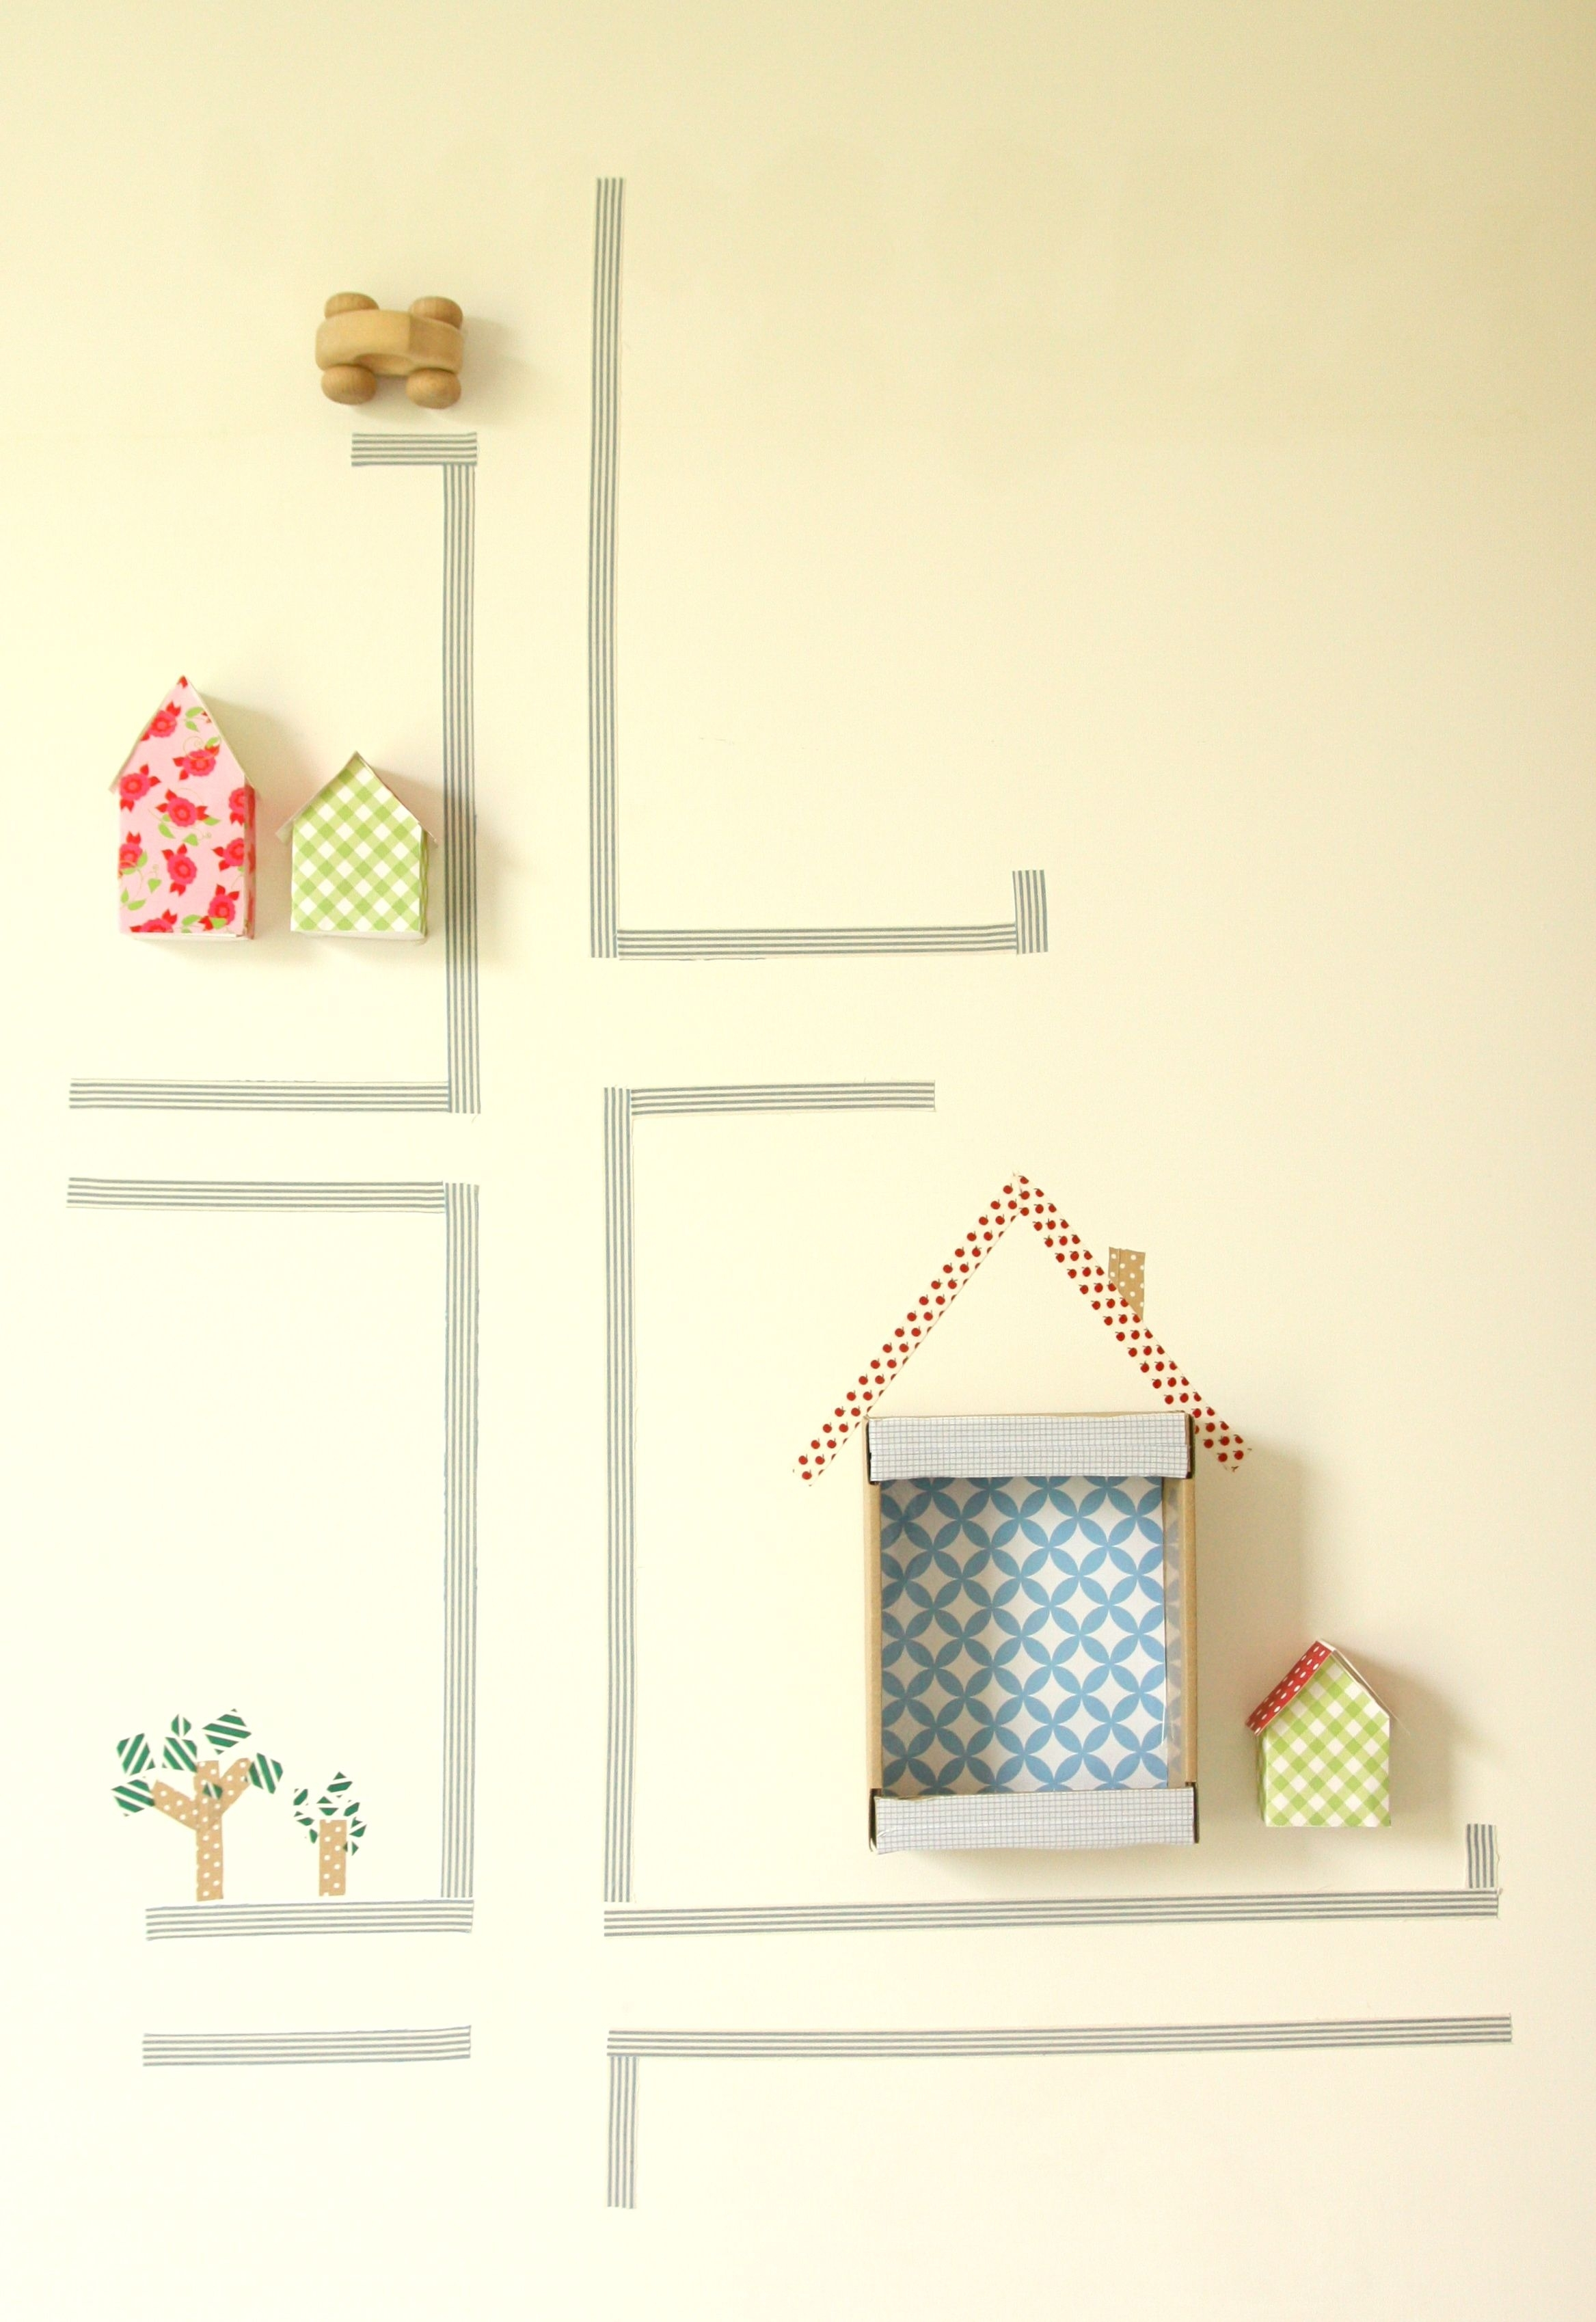 Washi Tape Wall Decoration – Dymyself | Share Your Craft | Pinterest For Most Current Washi Tape Wall Art (View 13 of 20)